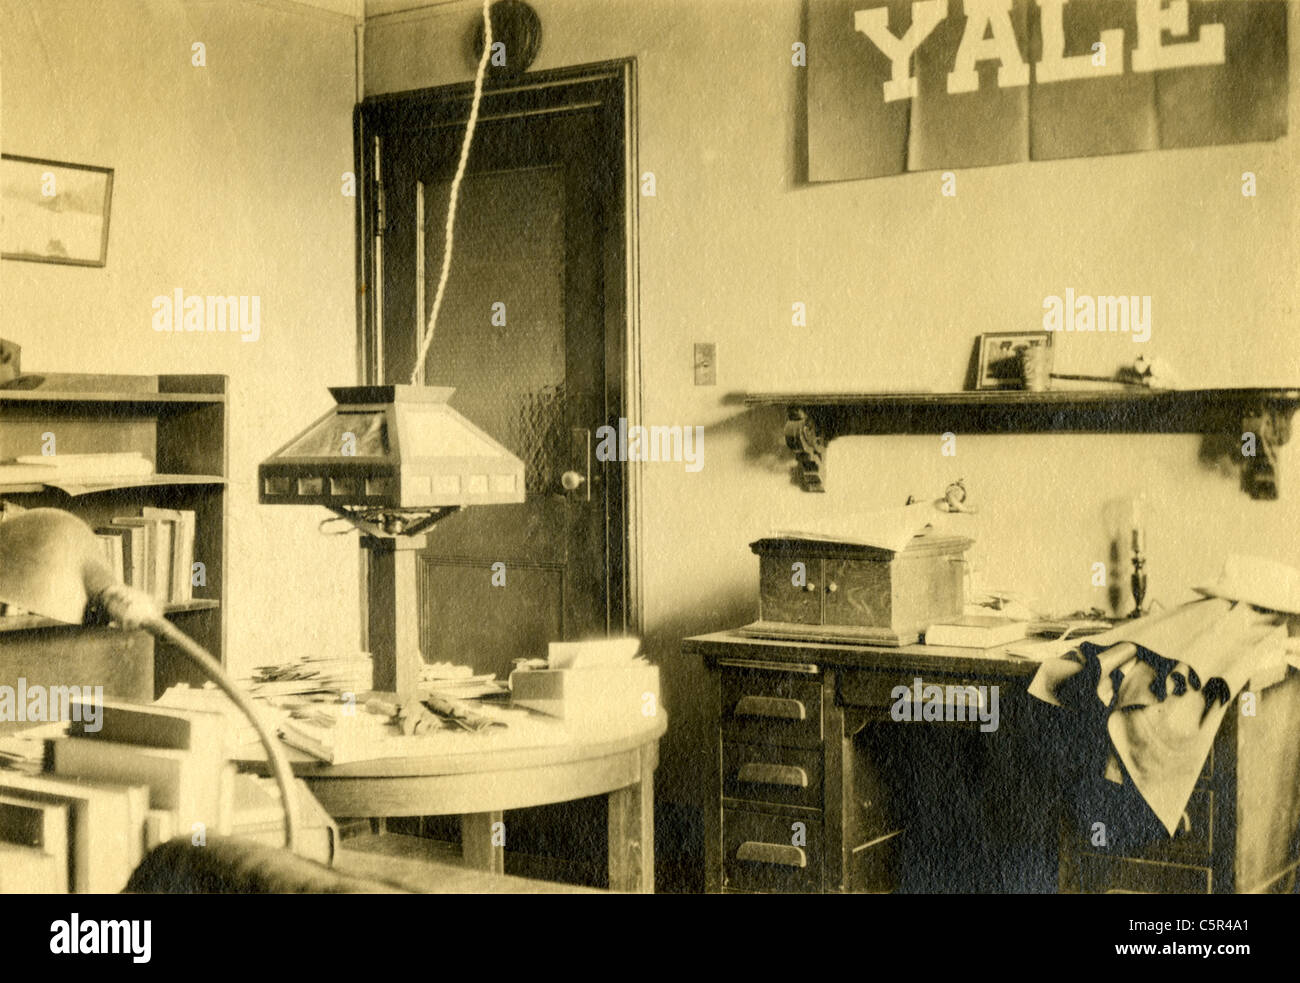 Circa 1910s photograph of an old room or office with a Yale University banner and Mission style electric lamp. - Stock Image